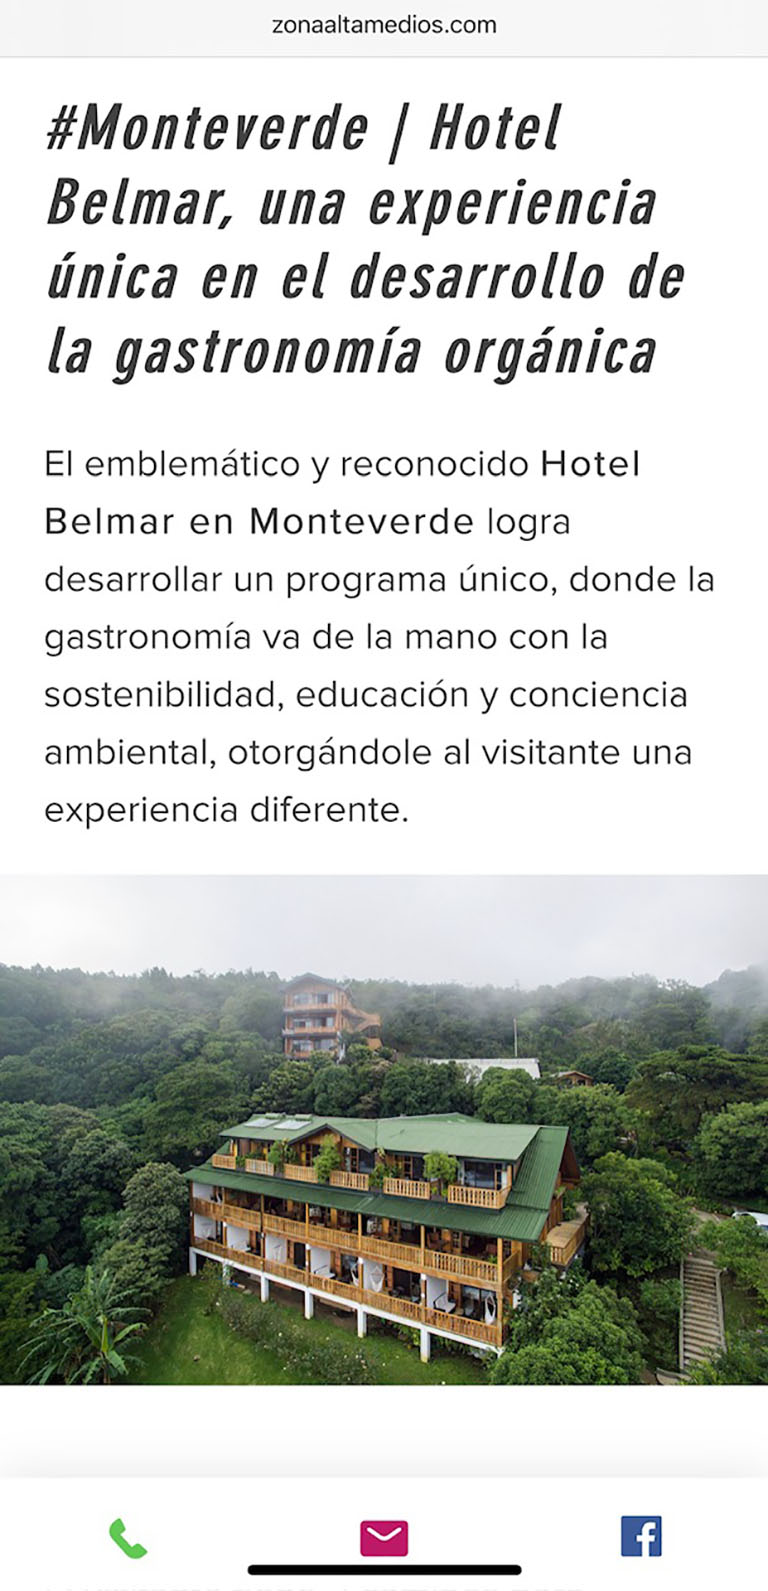 Publication about Hotel Belmar in Zona Alta Medios